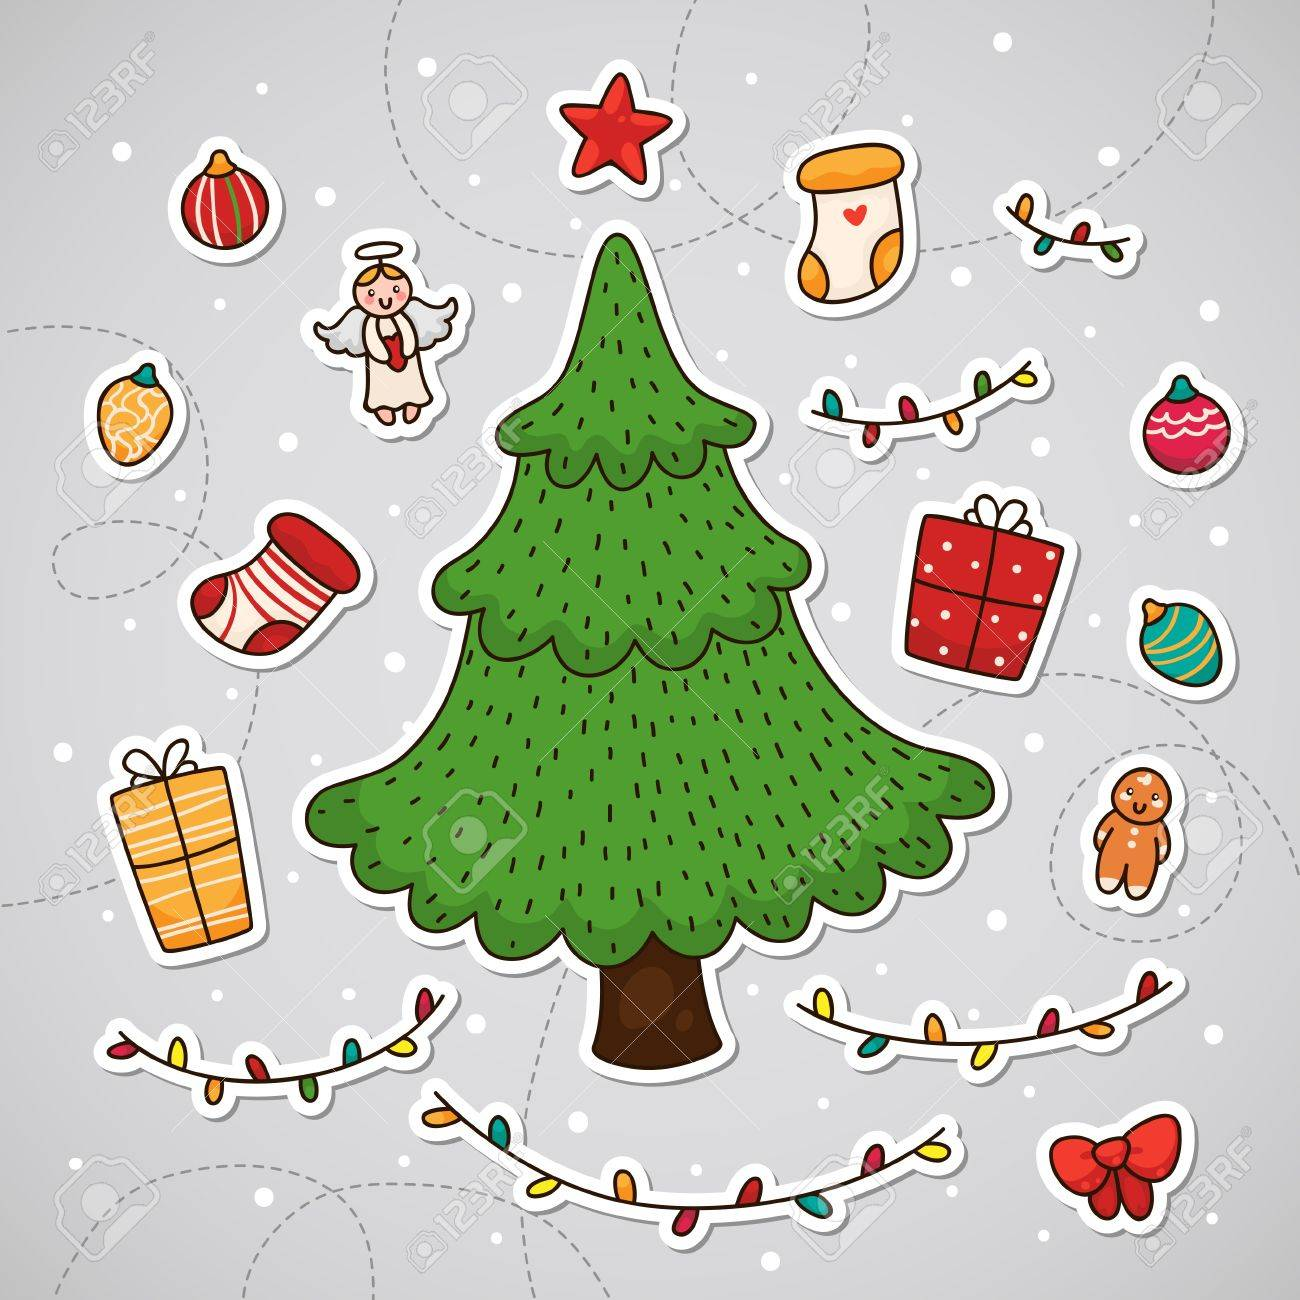 Christmas tree and other Christmas decorations Stock Vector - 18545913